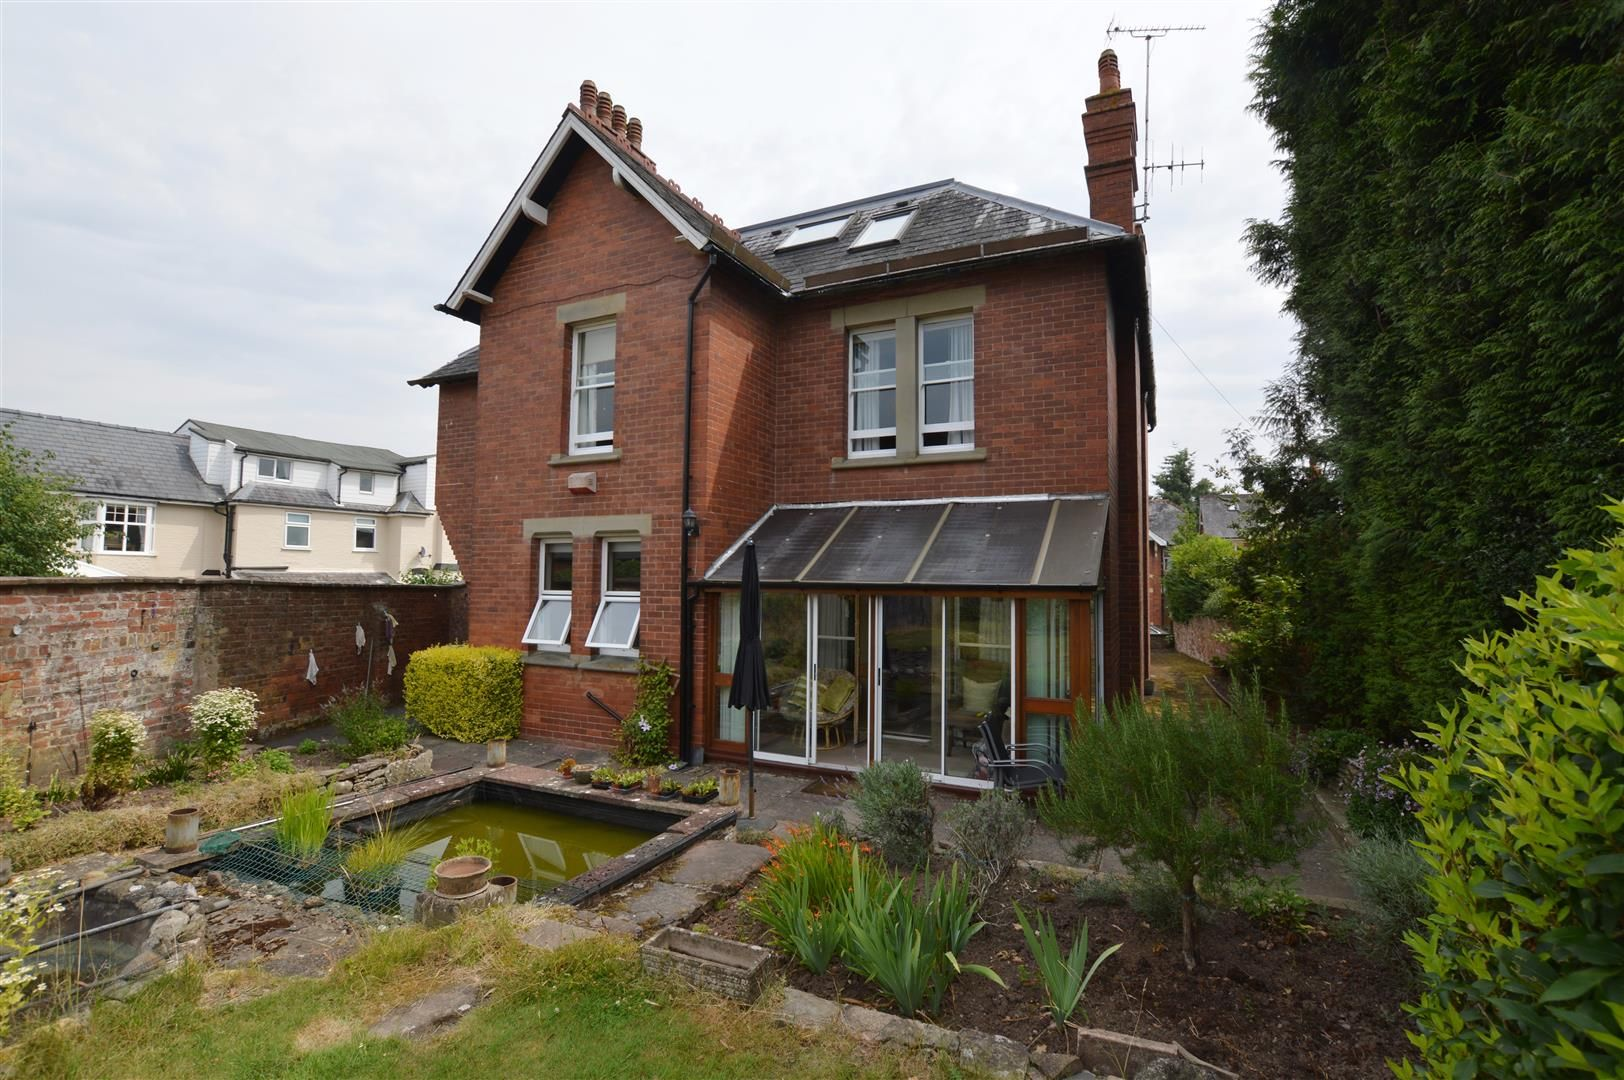 6 bed detached for sale in Leominster  - Property Image 13